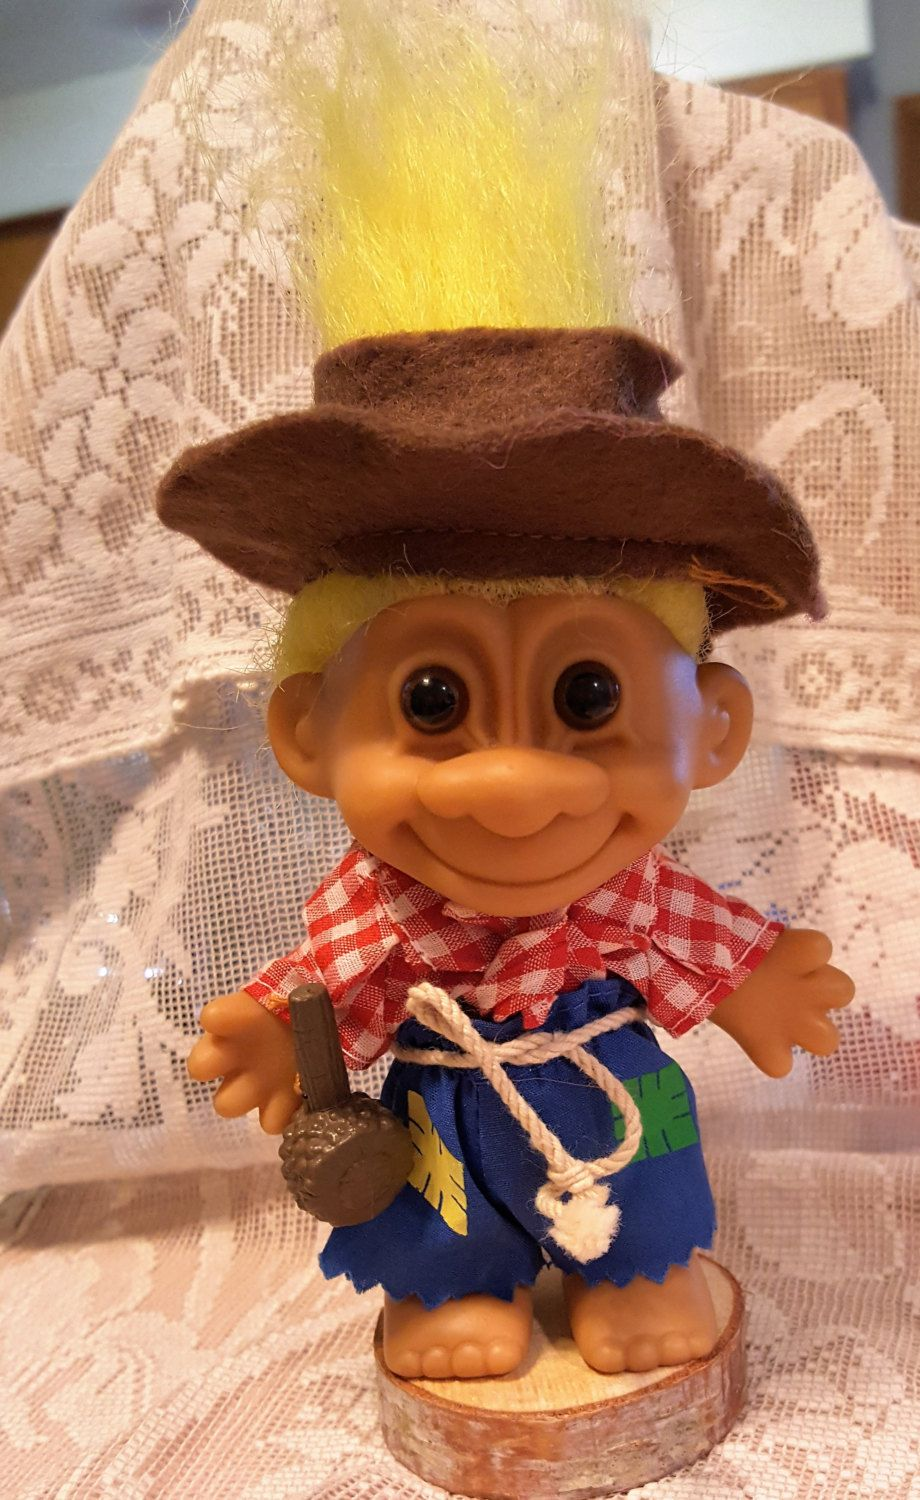 Russ Troll Hillbilly Farmer Doll With Corncob Pipe Original Rope Belt By Its42day On Etsy